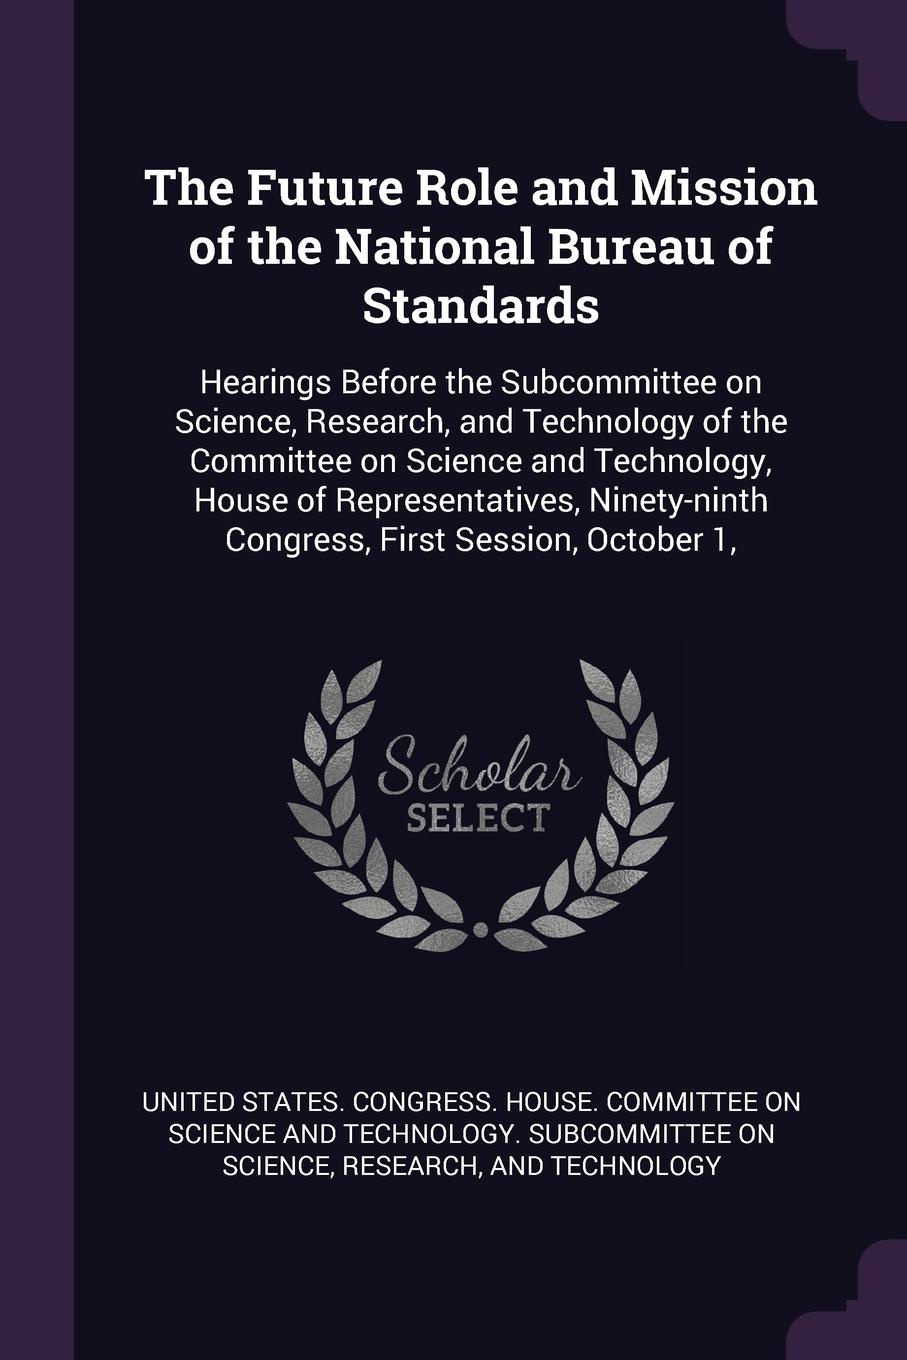 The Future Role and Mission of the National Bureau of Standards. Hearings Before the Subcommittee on Science, Research, and Technology of the Committee on Science and Technology, House of Representatives, Ninety-ninth Congress, First Session, Octo... the impact of state and national standards on k 12 science technology pb